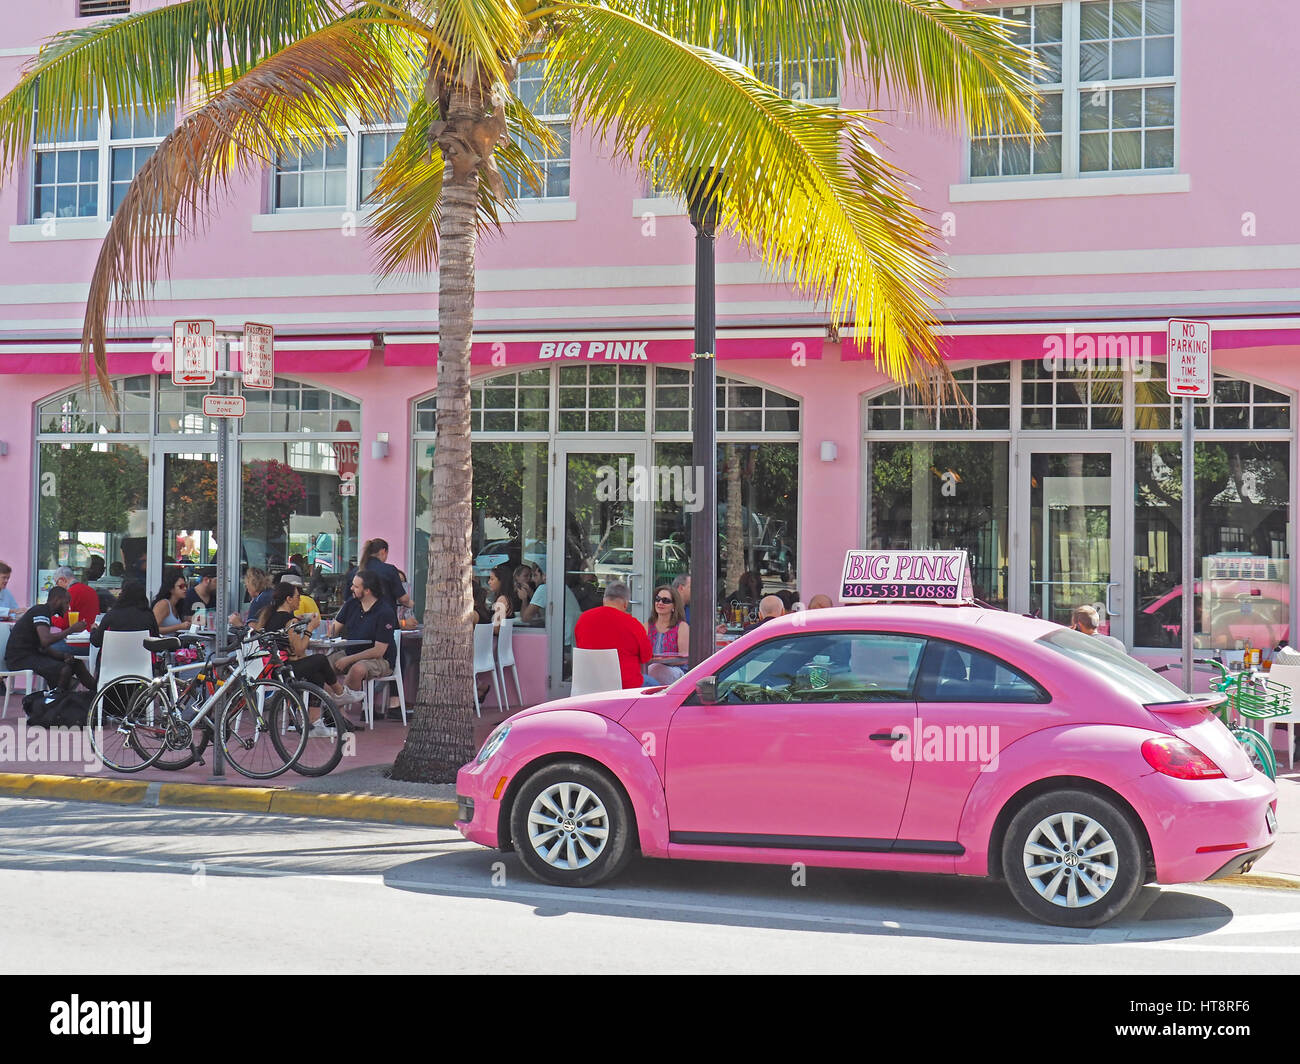 Miami South Beach popular restaurante Big Pink. Imagen De Stock